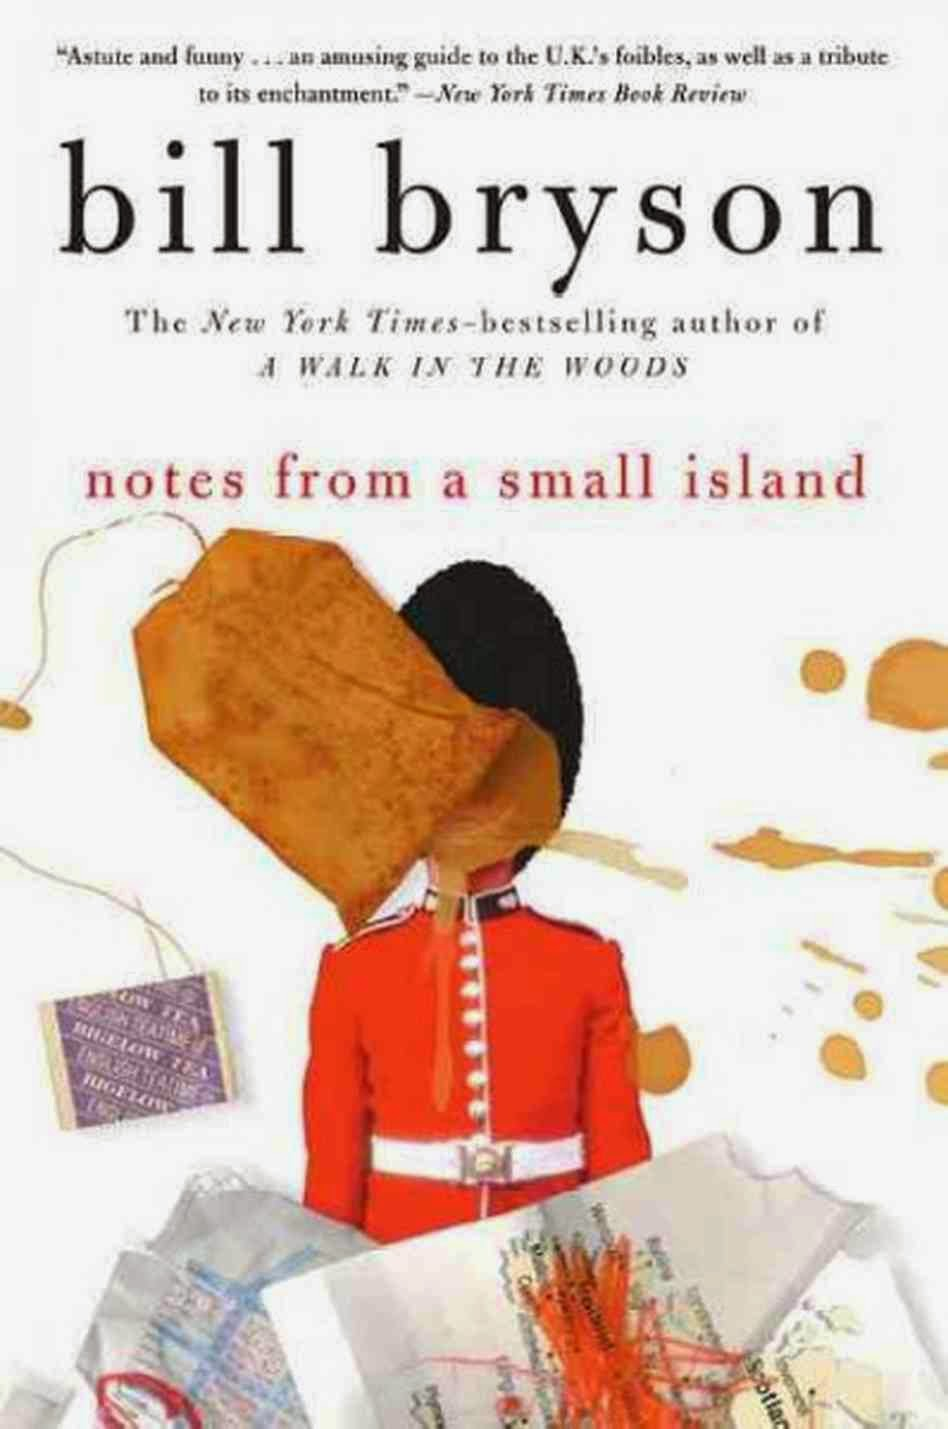 https://paperbackfool.wordpress.com/2014/08/18/review-notes-from-a-small-island/